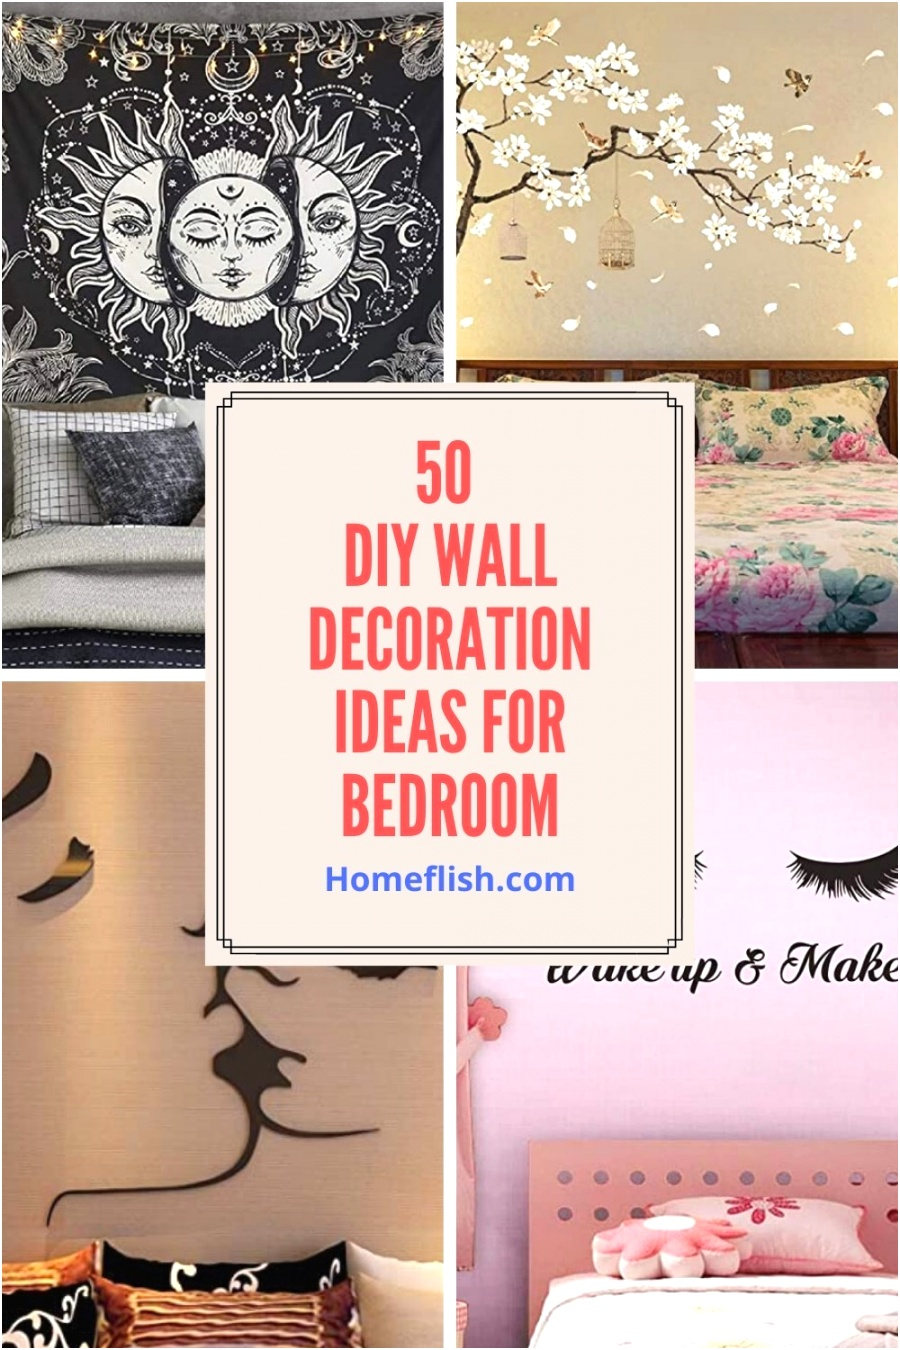 50 DIY Wall Decoration Ideas for Bedroom